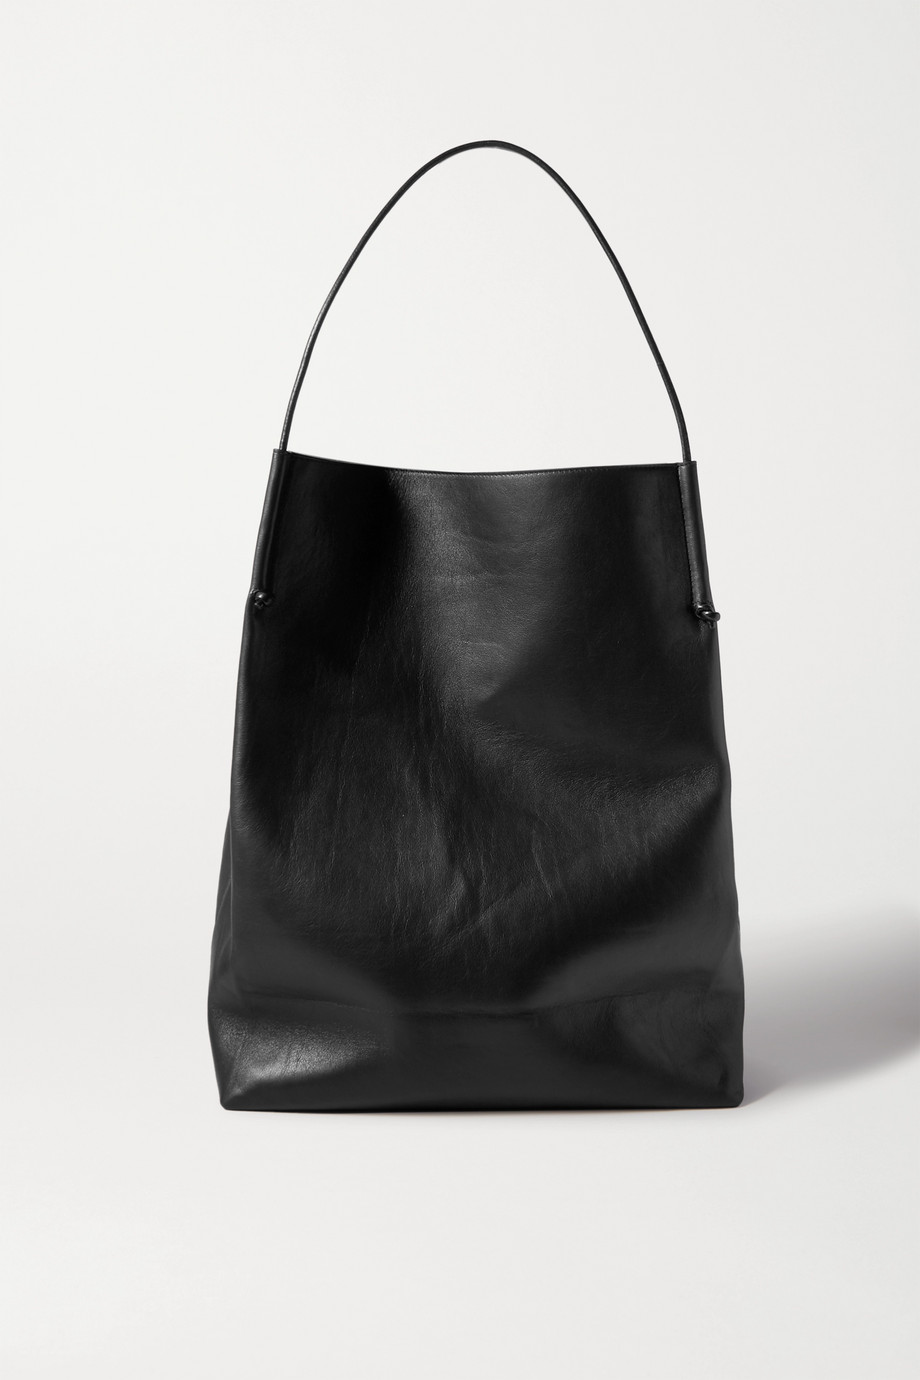 Bottega Veneta Knot medium leather tote